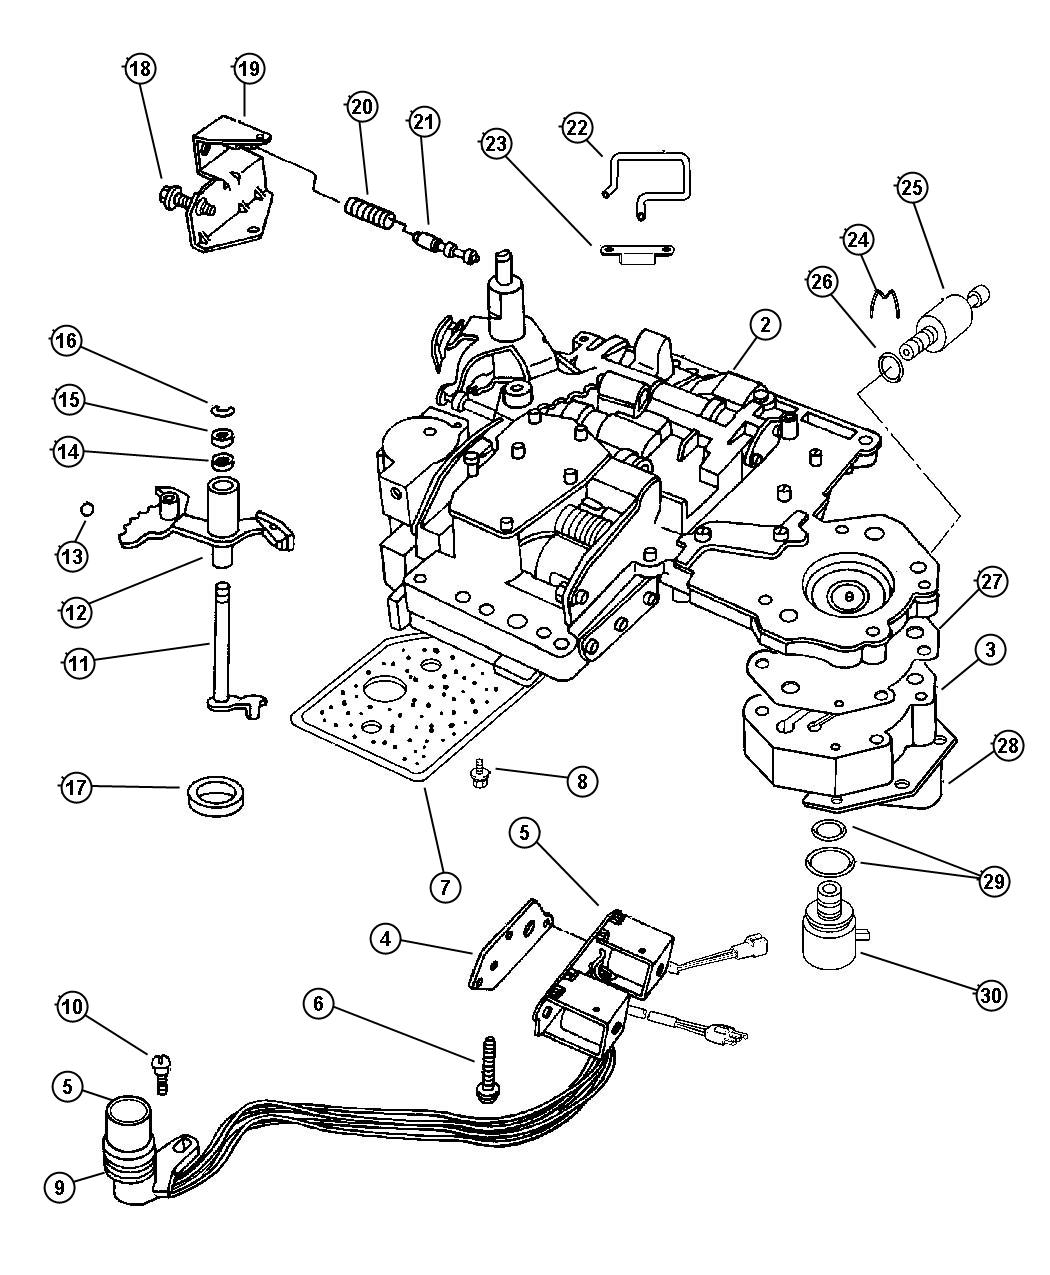 1995 dodge ram 1500 transmission wiring diagram how to construct a pourbaix diagrams get free